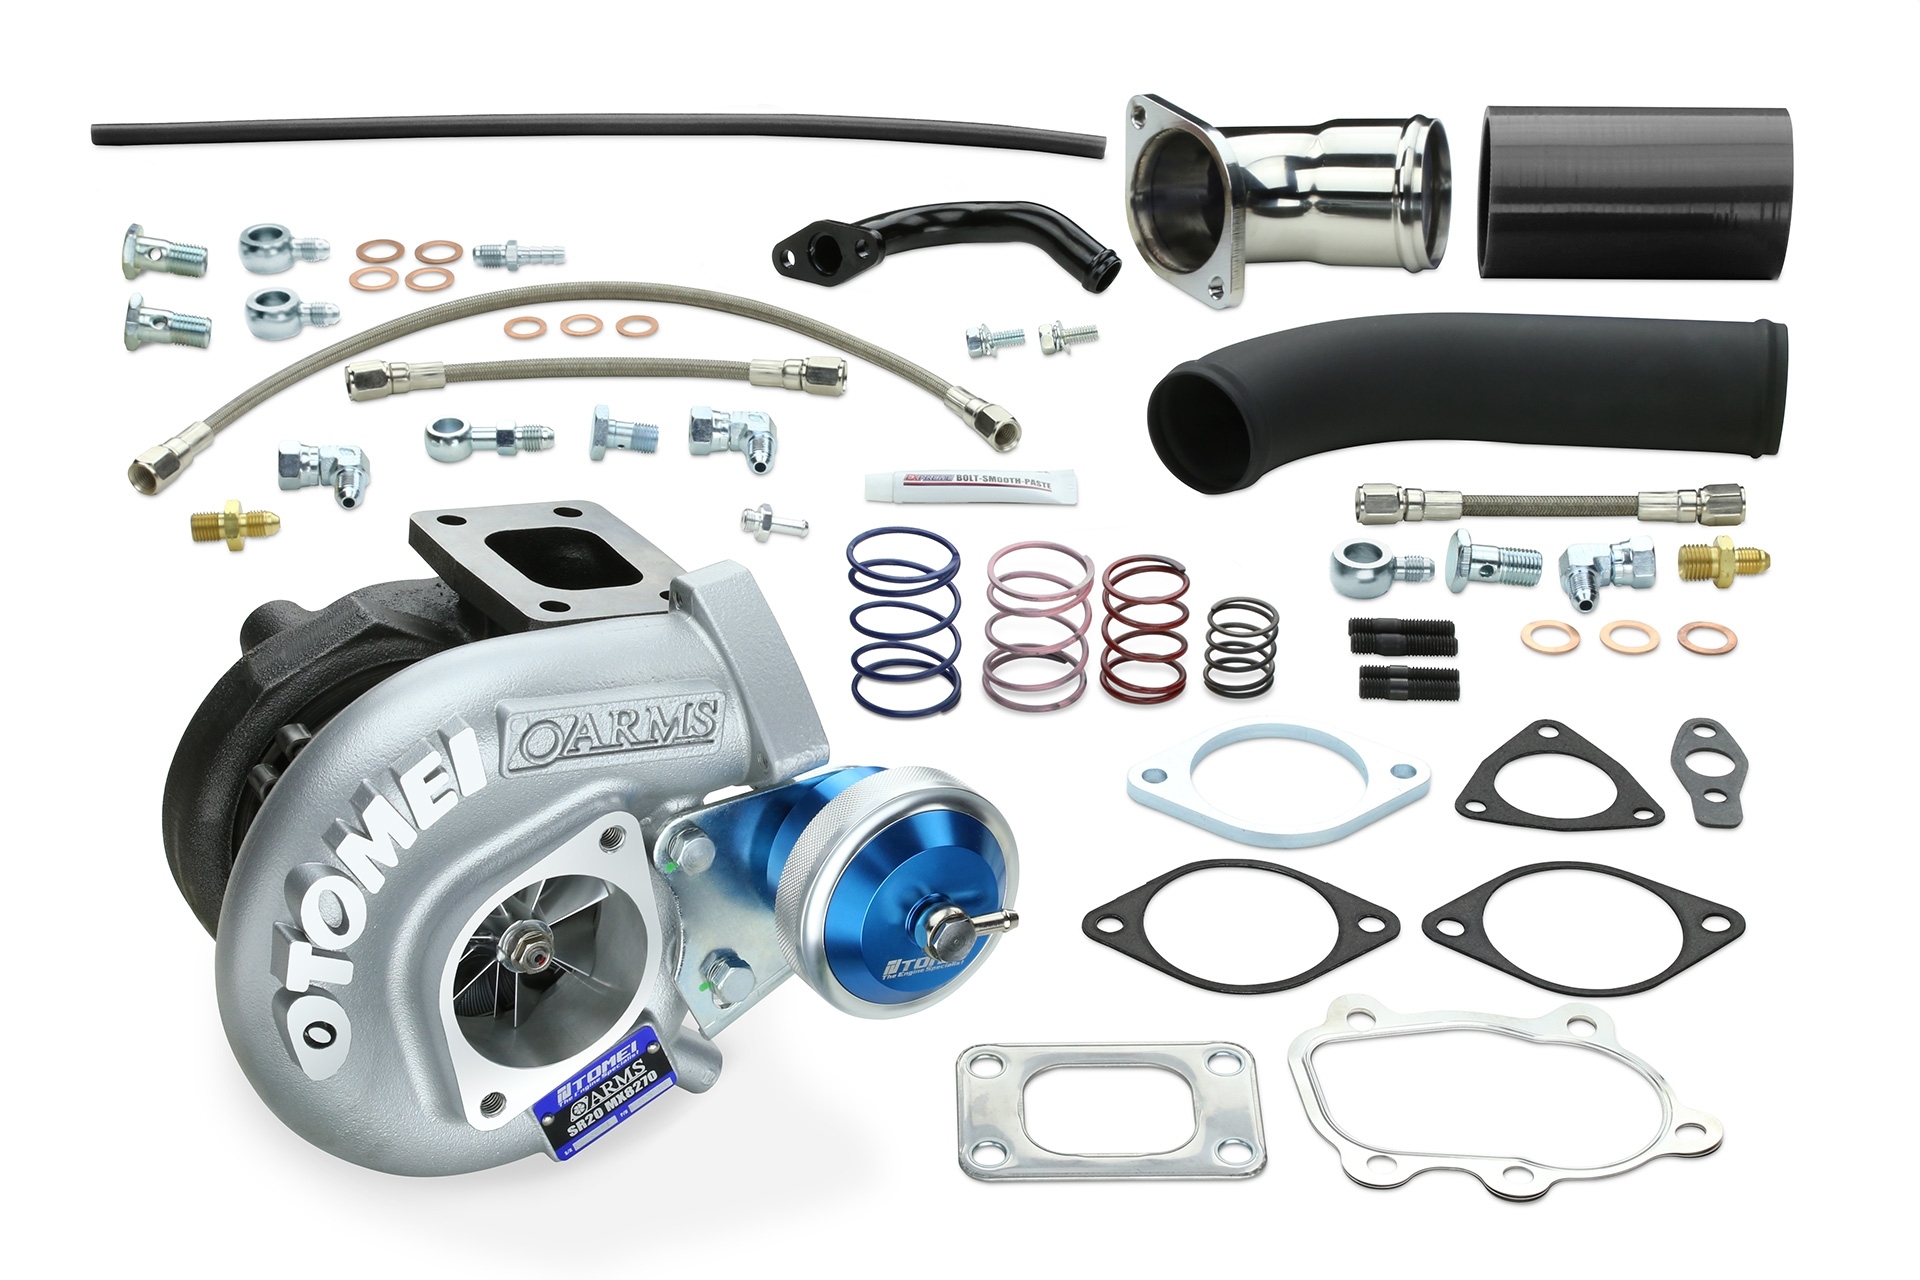 Tomei Turbocharger Kit Arms MX8270 SR20DET